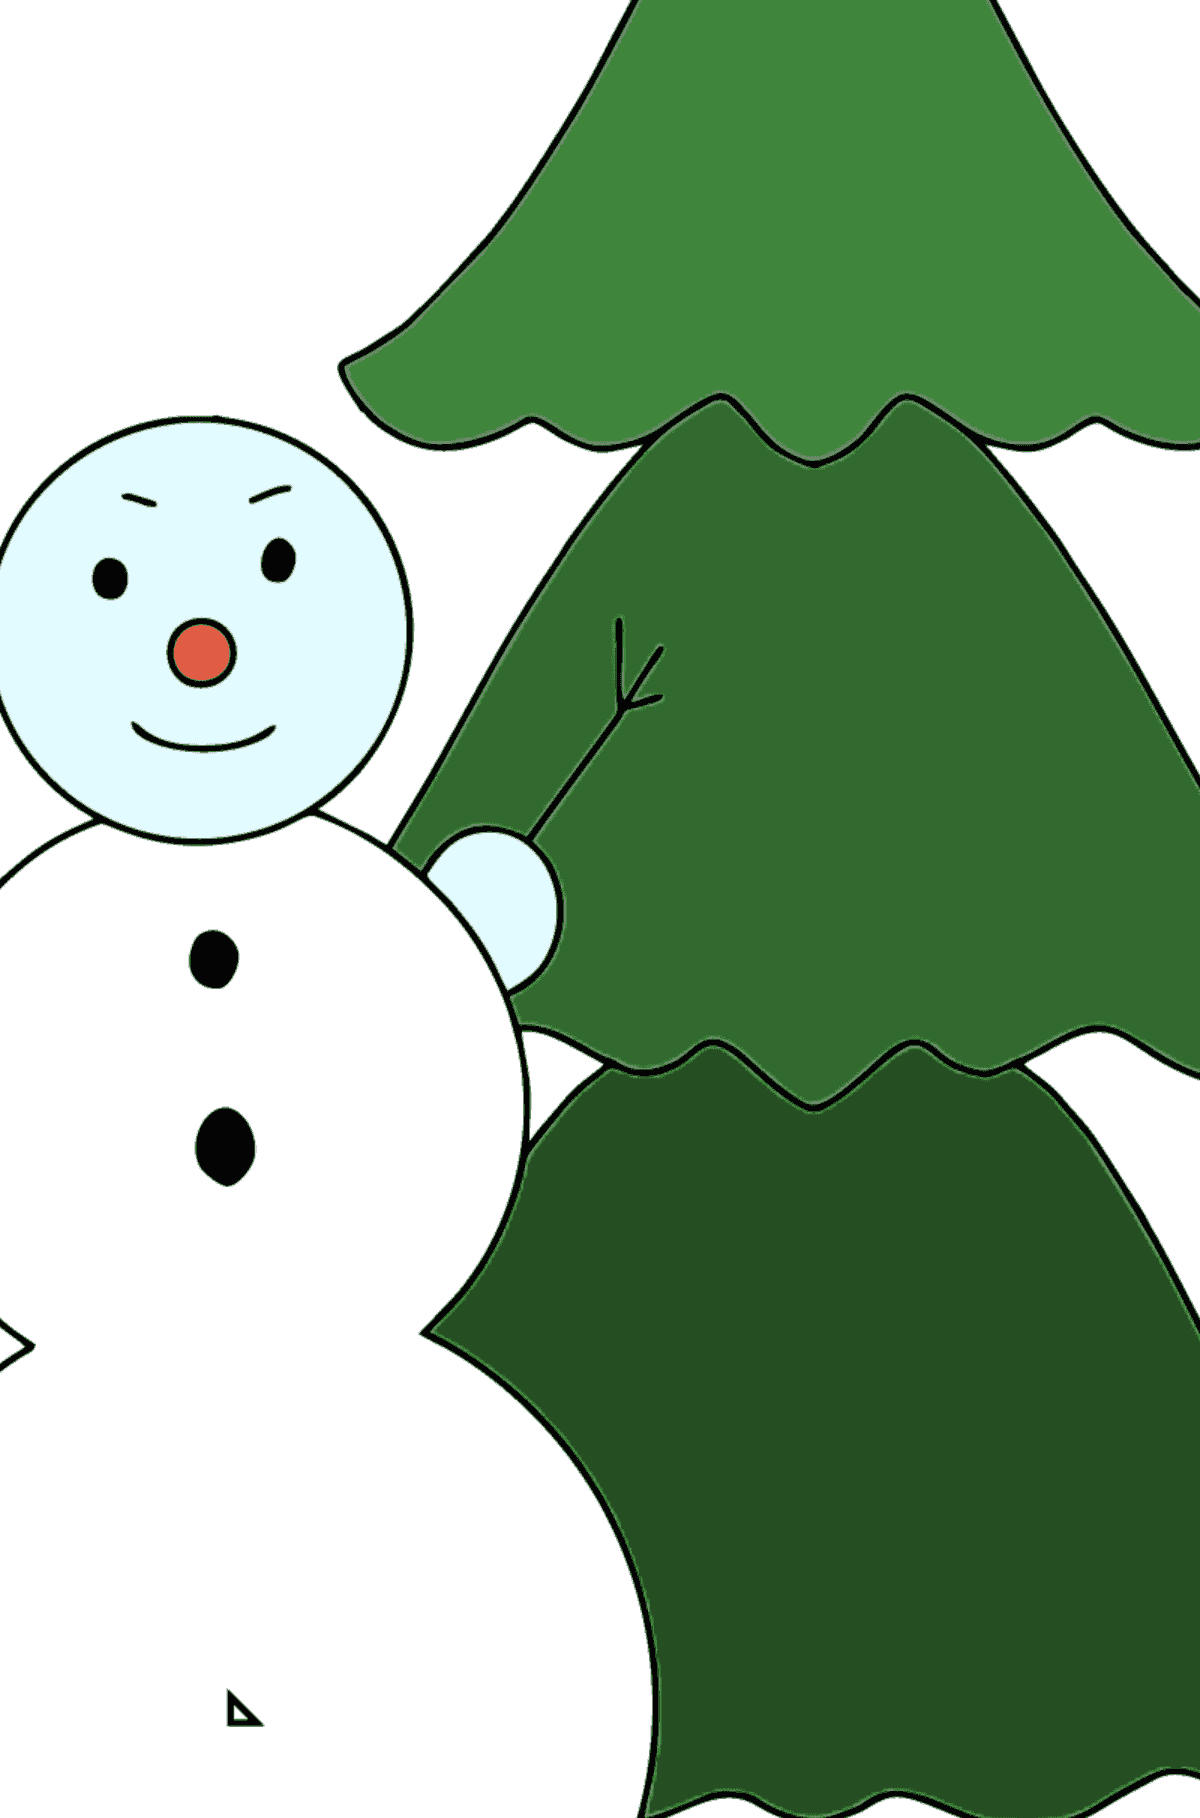 Winter Coloring Page - A Snowman with a Christmas Tree - Coloring by Geometric Shapes for Children